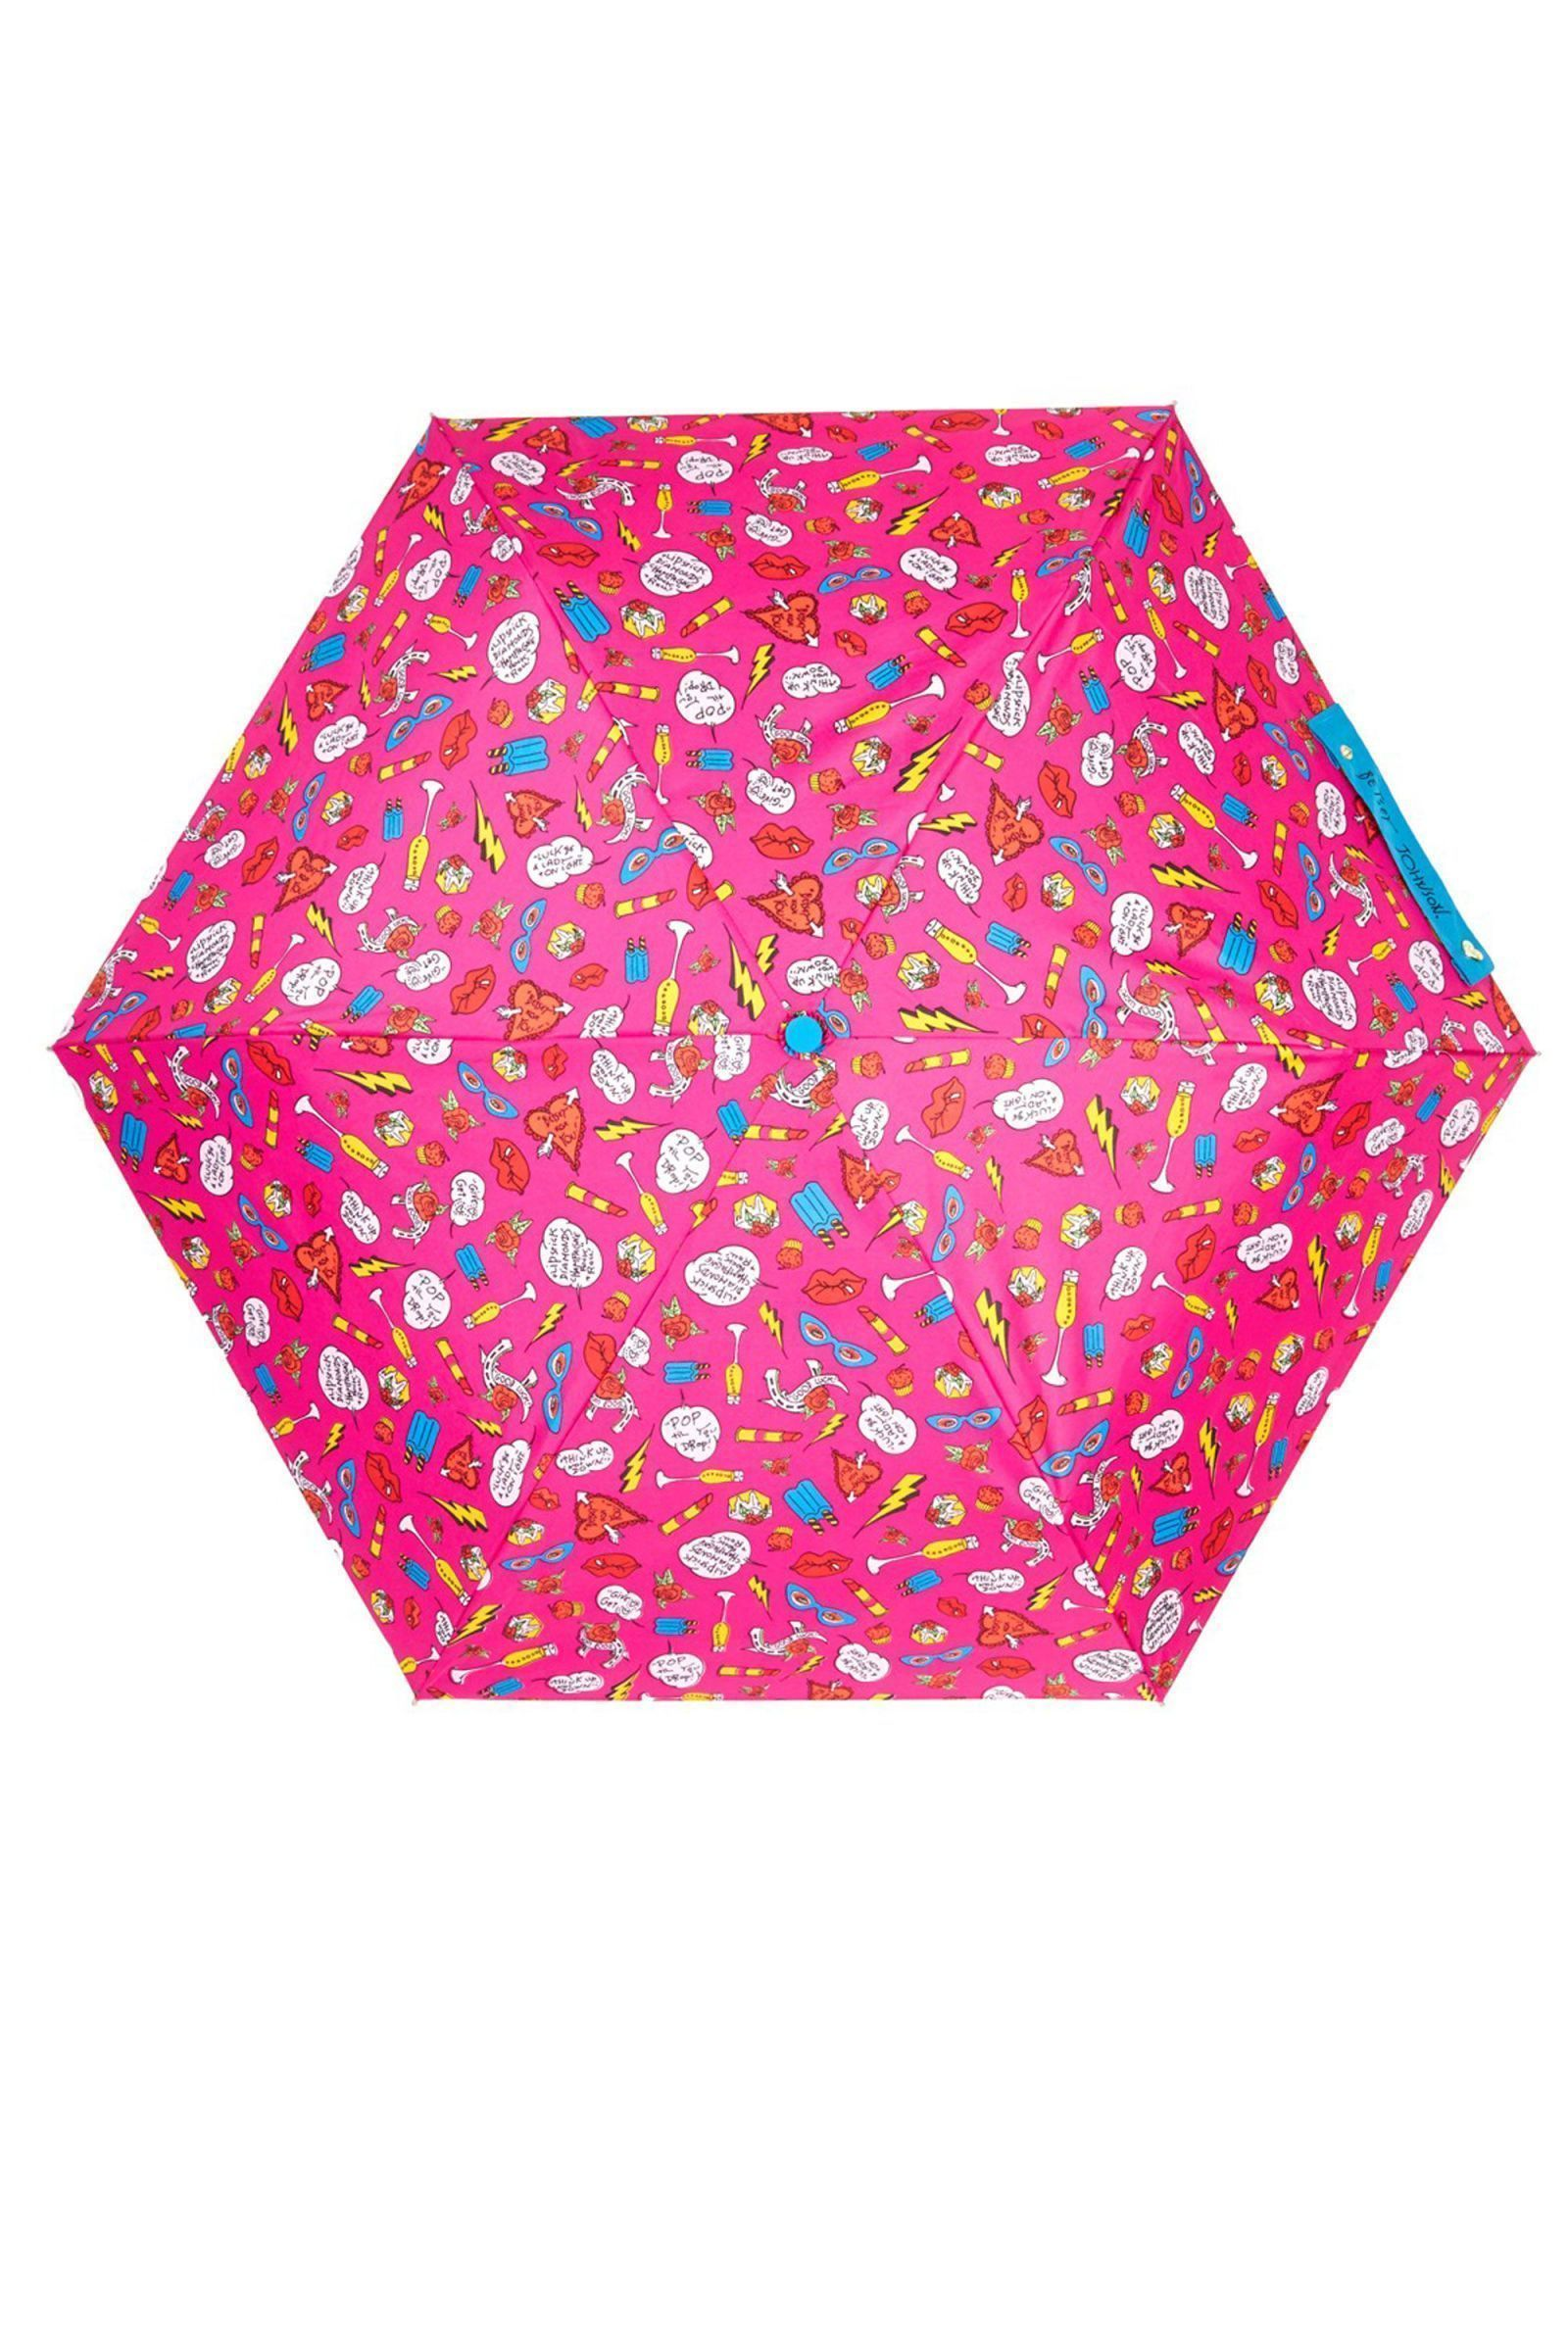 10 Super-Cute Umbrellas That Will Have You Singing in the Rain #cuteumbrellas No matter how bad the weather is, you can't help but feel happy carrying this super-fun umbrella. Betsey Johnson Pink Umbrella, $14.97, Nordstromrack.com.   - Seventeen.com #cuteumbrellas 10 Super-Cute Umbrellas That Will Have You Singing in the Rain #cuteumbrellas No matter how bad the weather is, you can't help but feel happy carrying this super-fun umbrella. Betsey Johnson Pink Umbrella, $14.97, Nordstromrack.com. # #cuteumbrellas